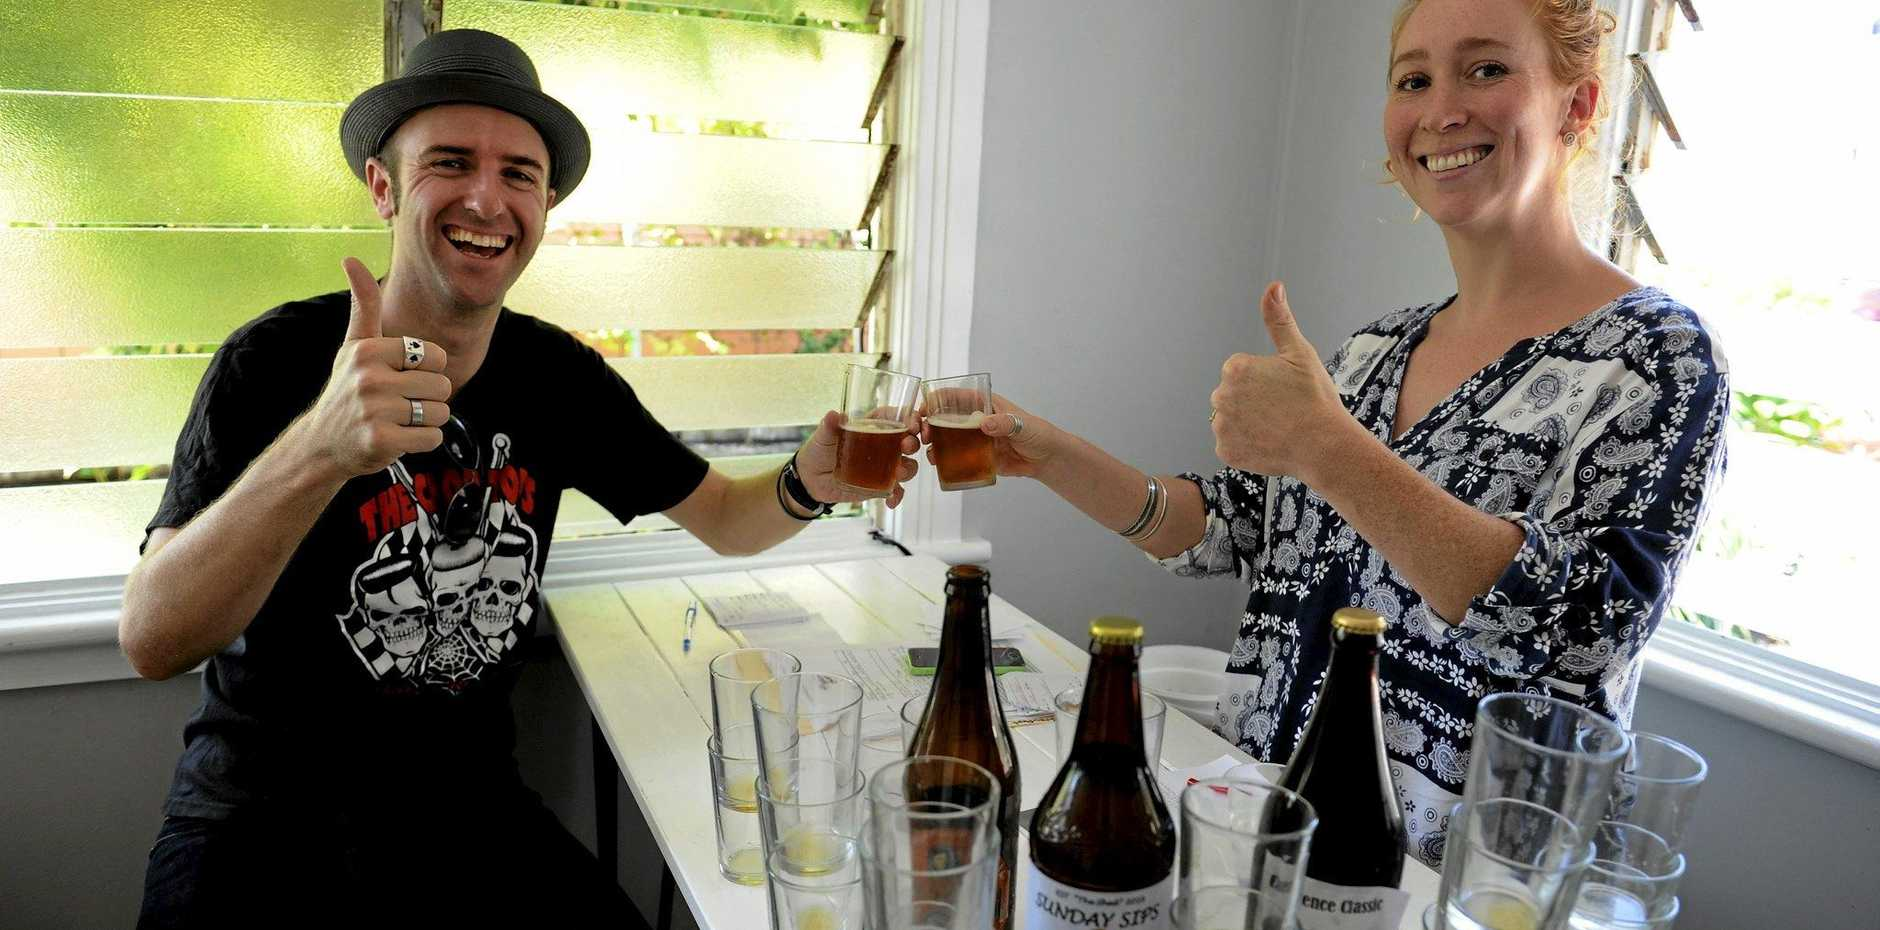 TASTE TESTING: Judging of the Brewfest home brew competition, hosted by Irons and Craig Cafe in Yamba, is beer blogger Mason Hellcat and Palmers Island Store and Bottleshop owner Holly Usitani.